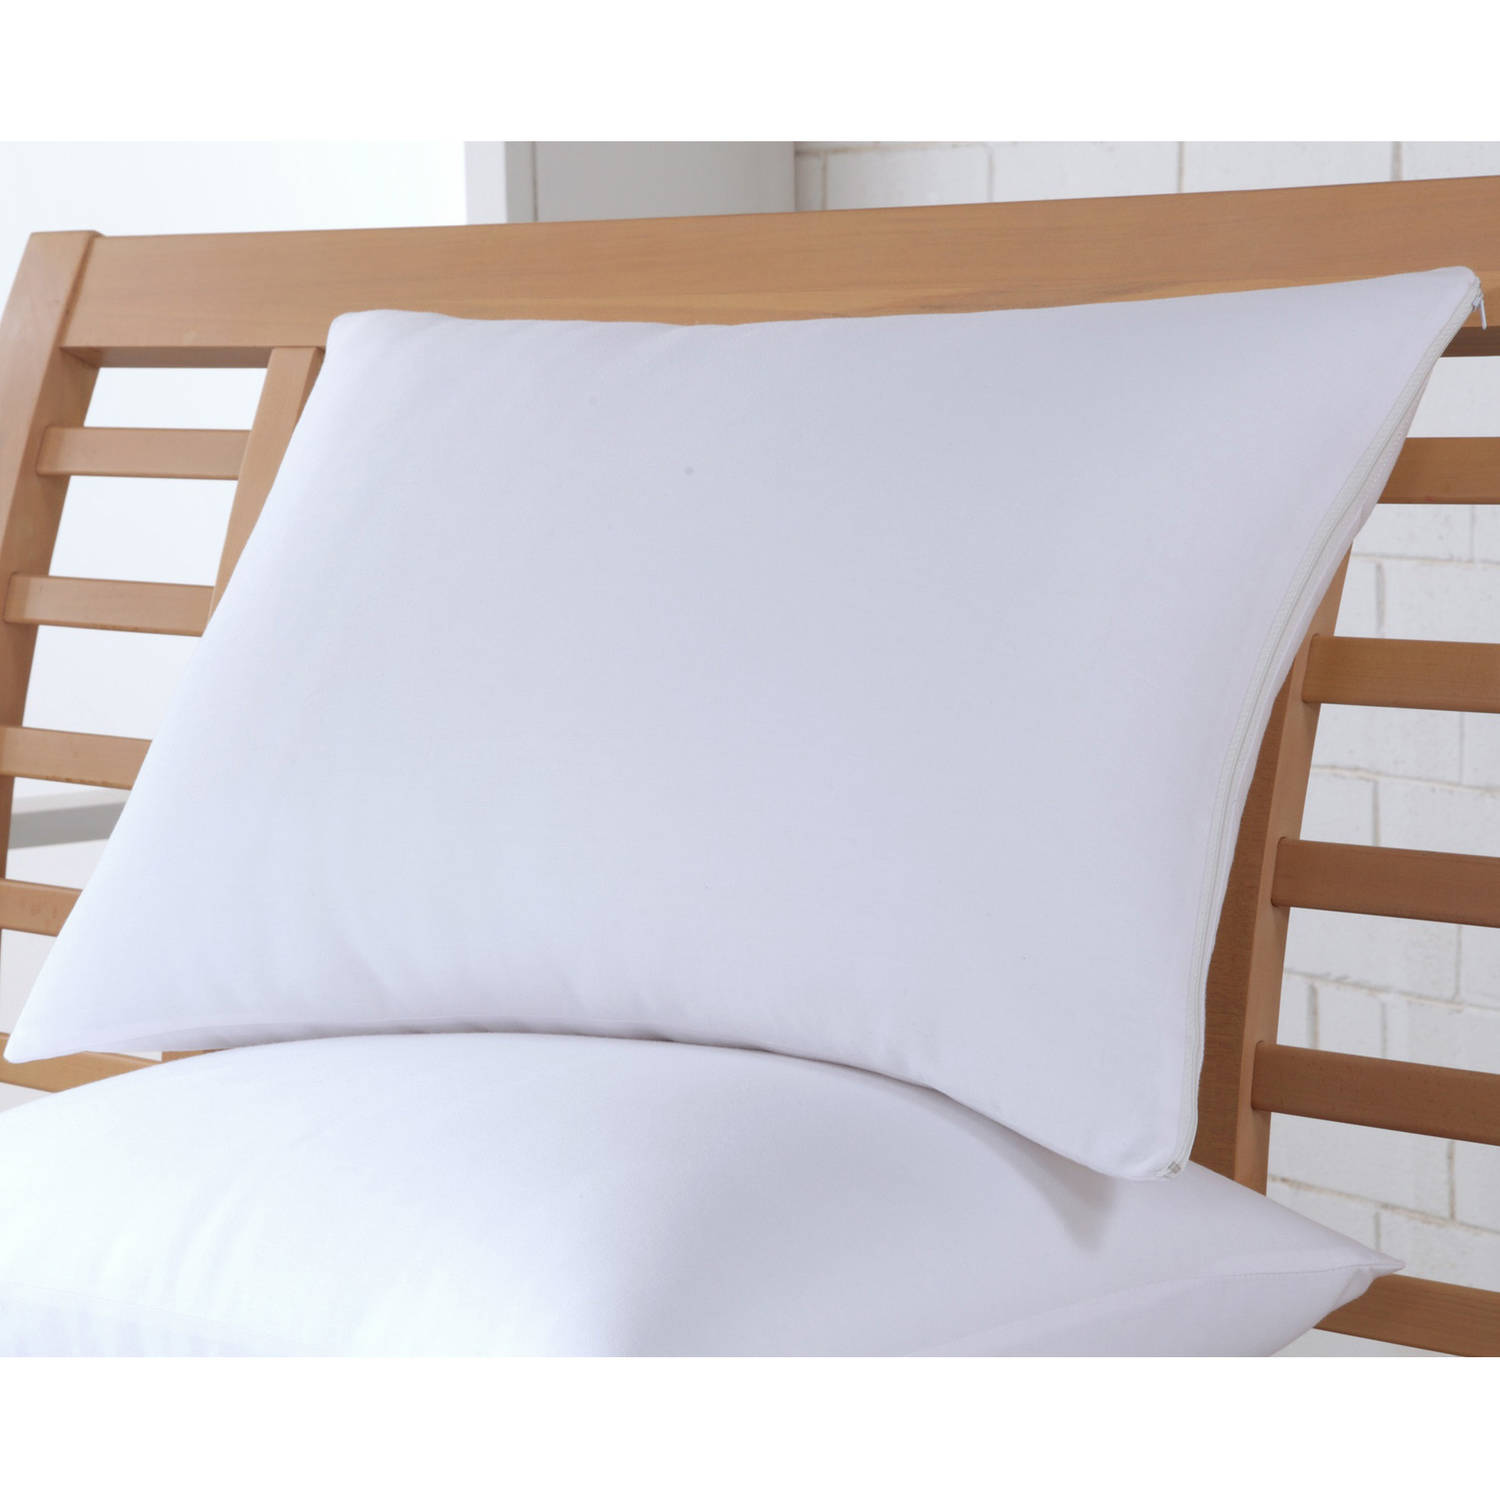 Ultrasoft Cotton Rich Bed Pillow Covers, Set of 2 by Perfect Fit Industries